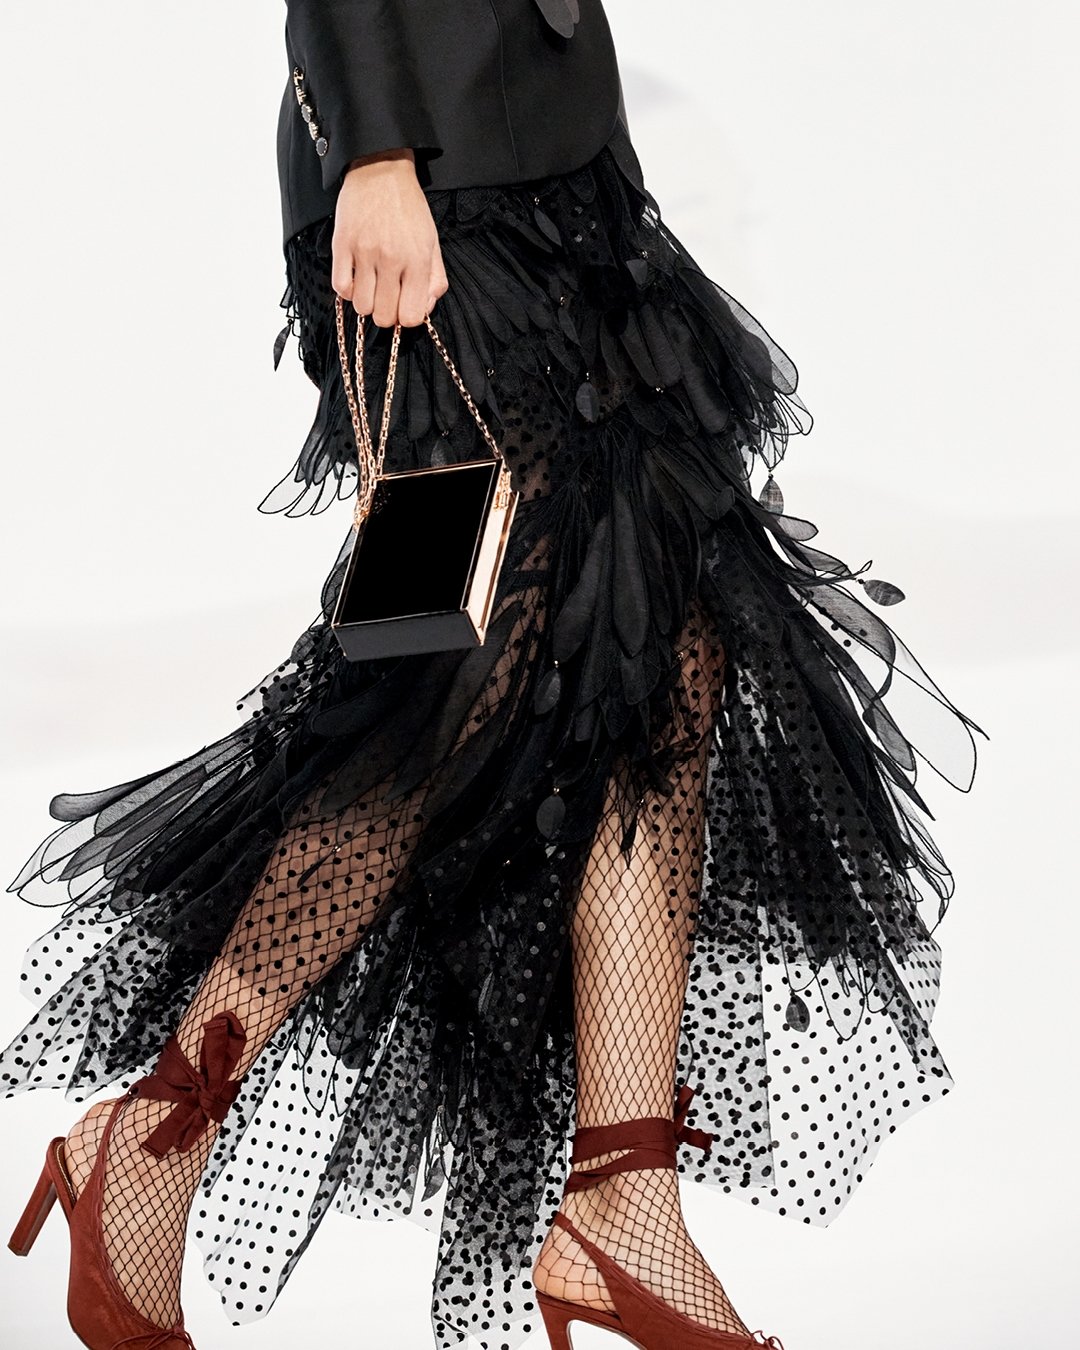 IN THE DETAIL: LOOK 28 SPRING READY TO WEAR 2022